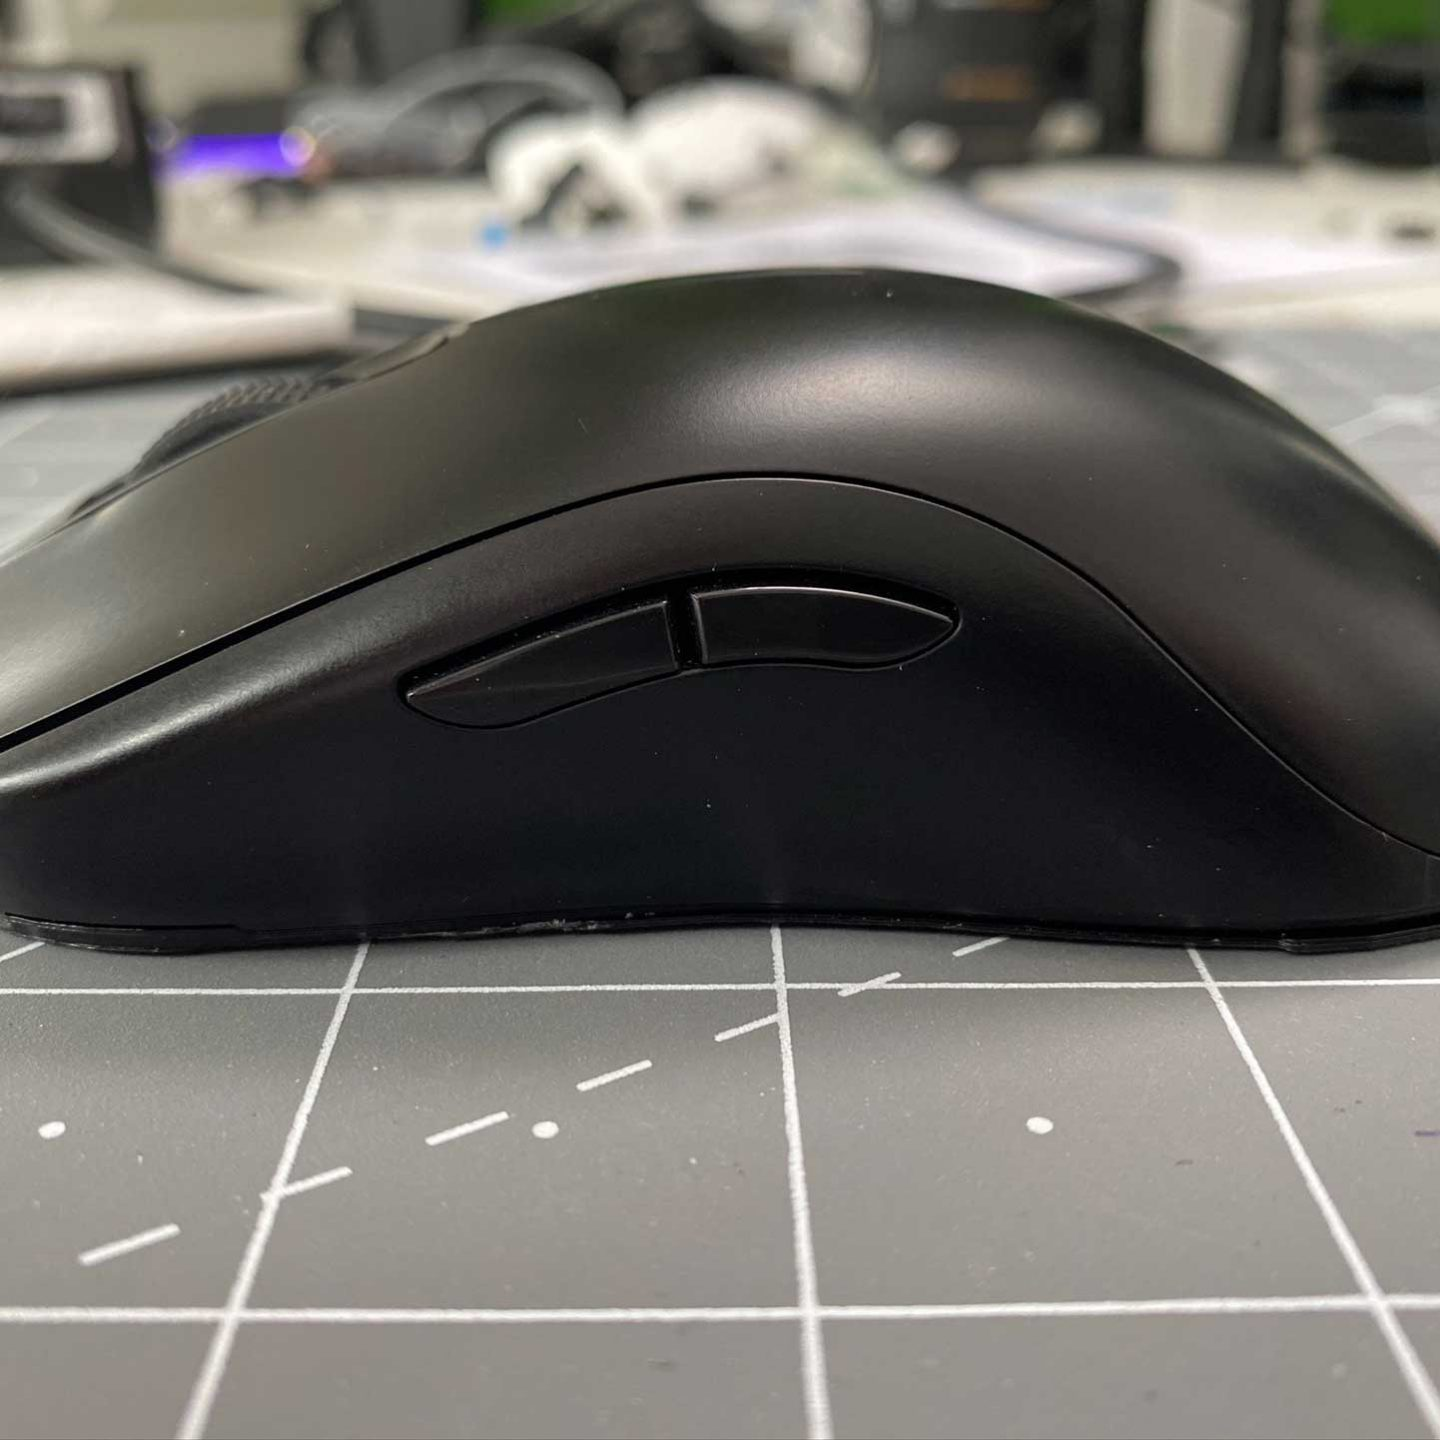 Zowie FK2 Wireless Mod Using the G305 3d Printed Base